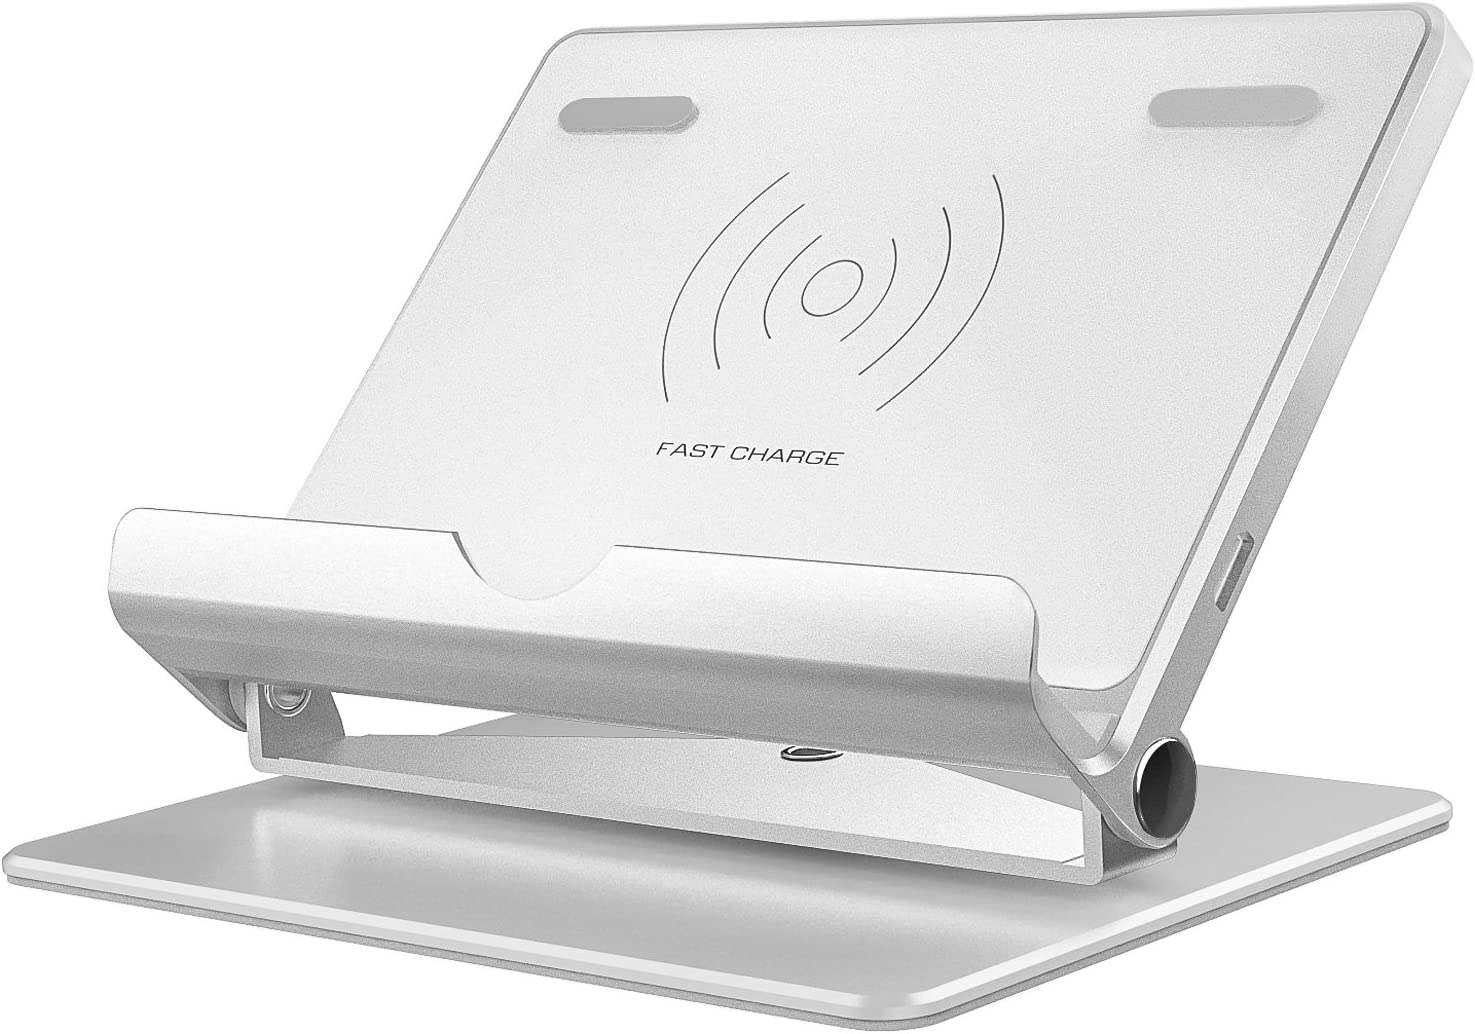 Silver MoKo Fast Charge Wireless Charging Stand 360 Degree Rotation Foldable Charger Cradle for iPhone SE 2020//11 Pro Max//11 Pro//11//X//8//8 Plus Samsung Galaxy S10//S10+//S10e//S9//S9+//Note 8//S8//S8 Plus